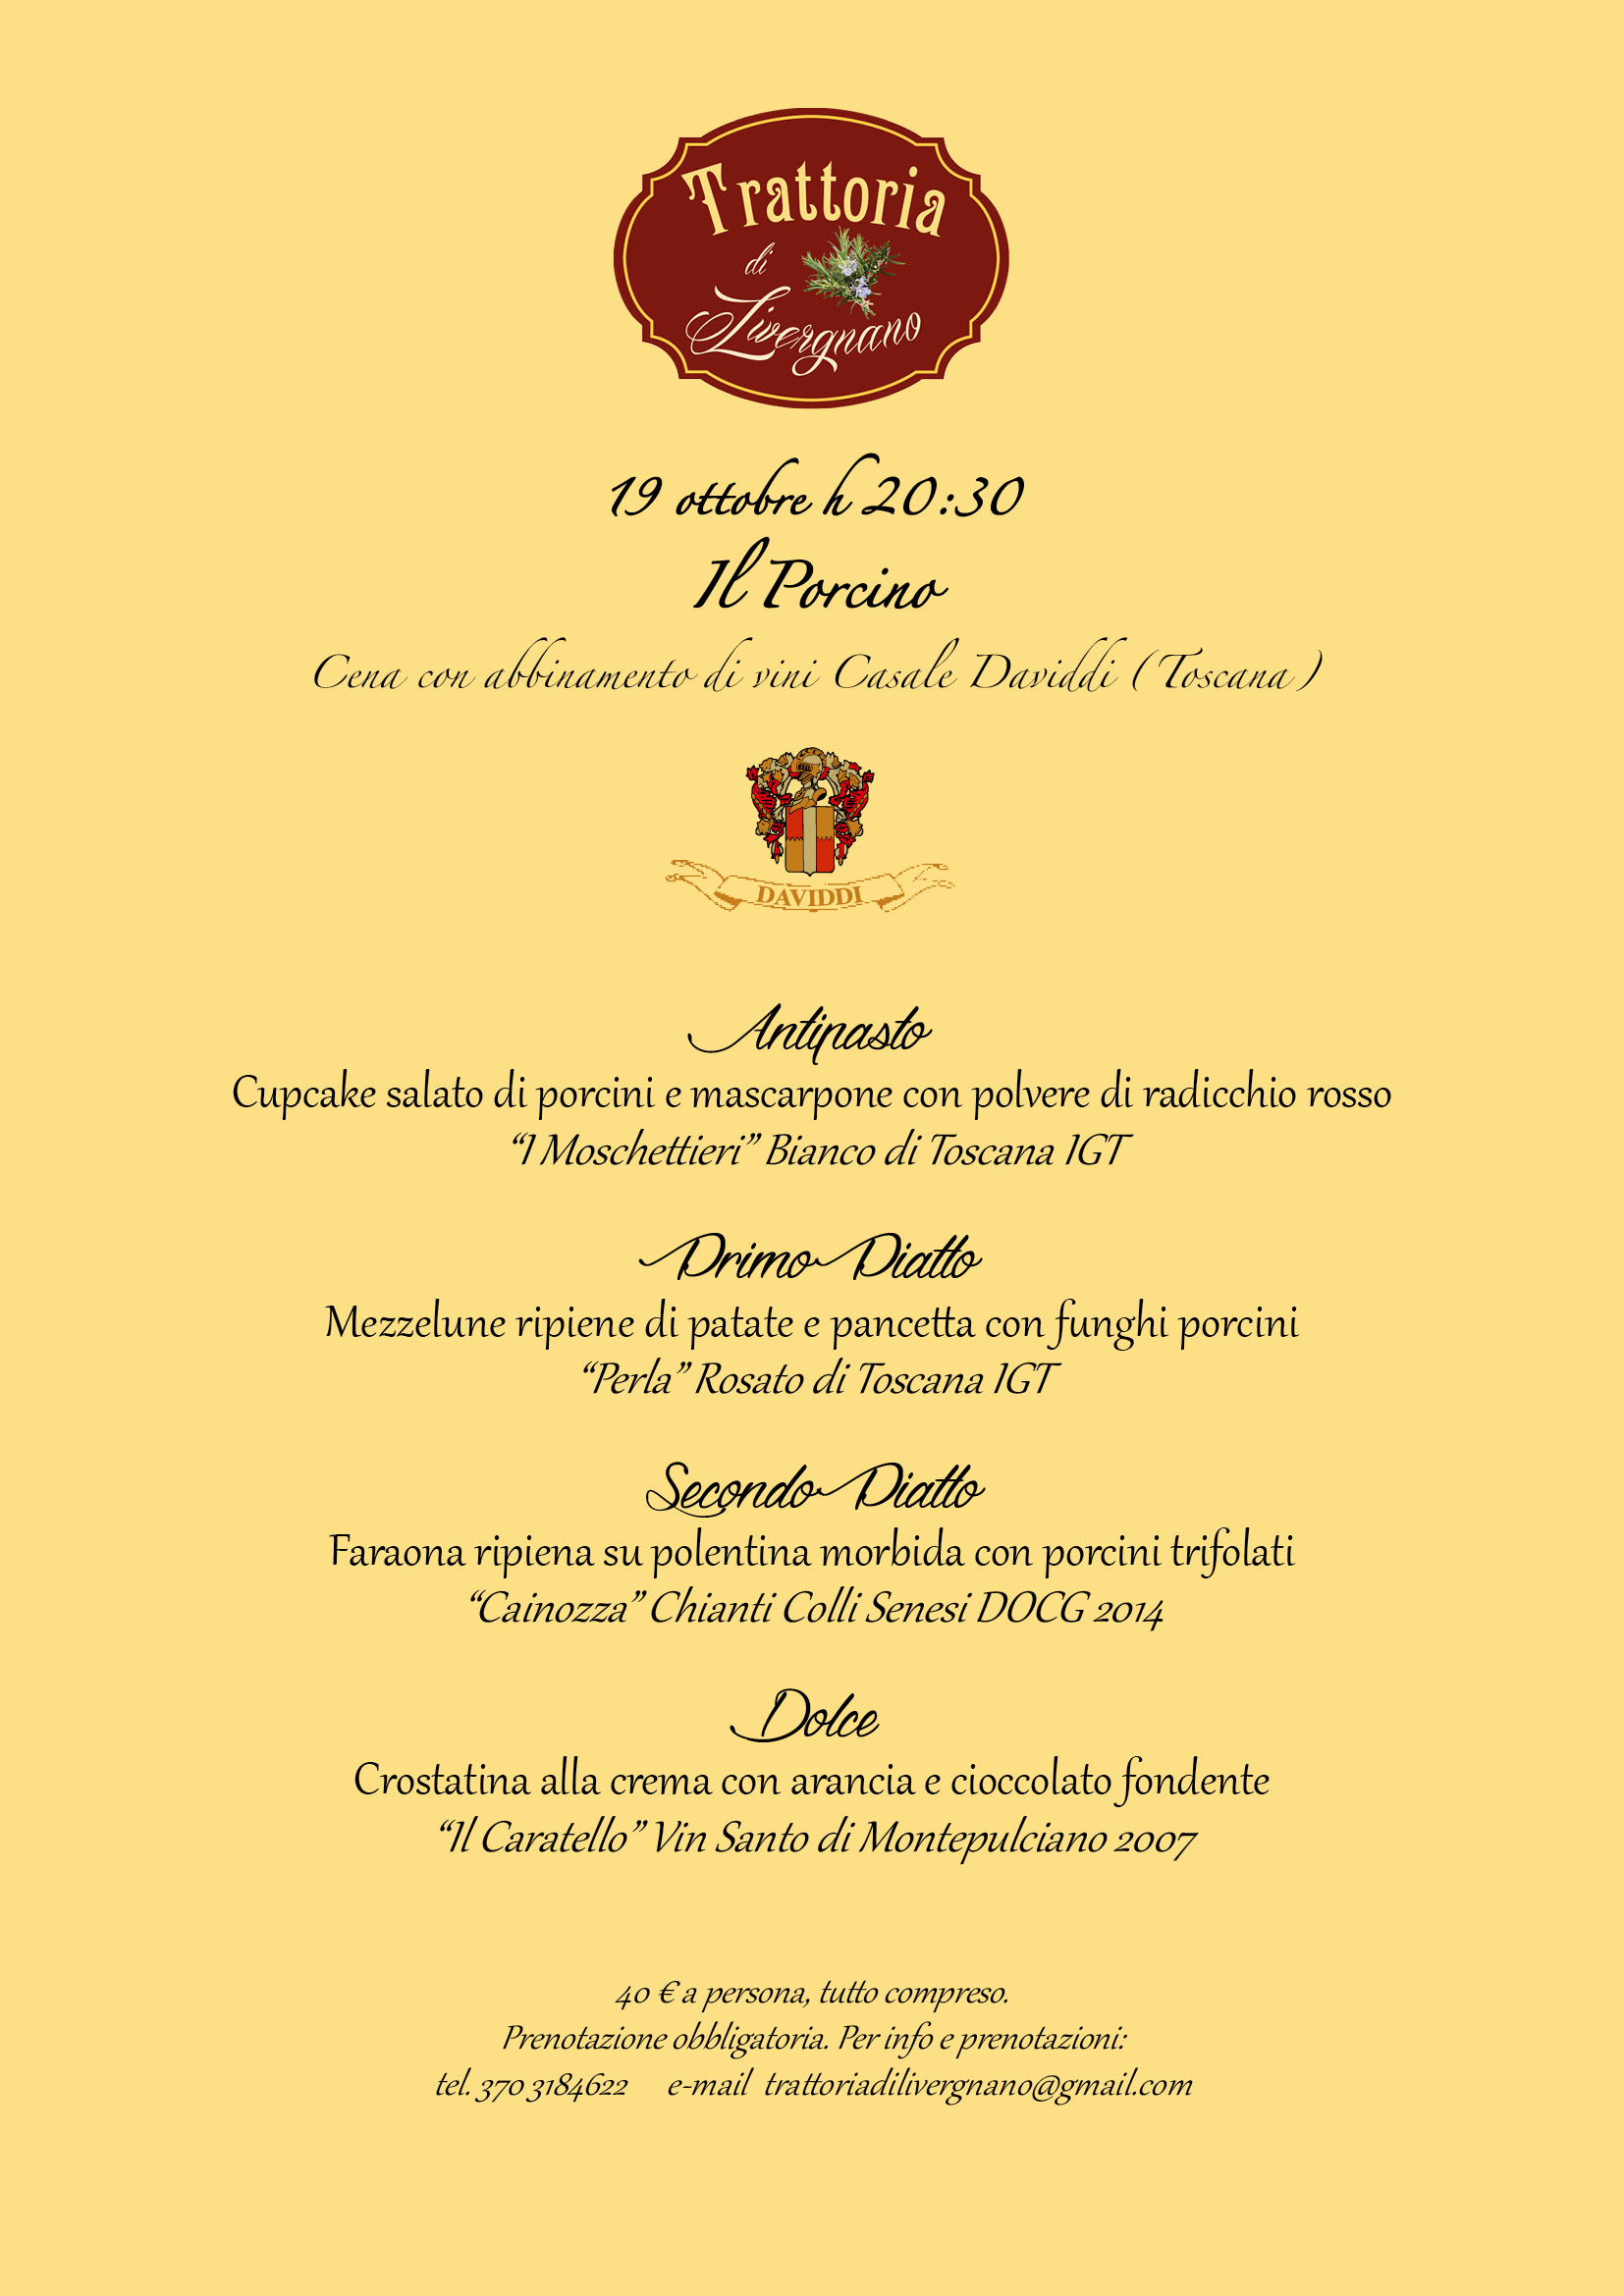 Menu dedicated to Porcino mushrooms with pairings of Daviddi wines, from appetizers such as porcini-mascarpone salty cupcakes with red chicory powder, to guineafowl stuffed on soft polenta with sauteed porcini mushrooms and much more.